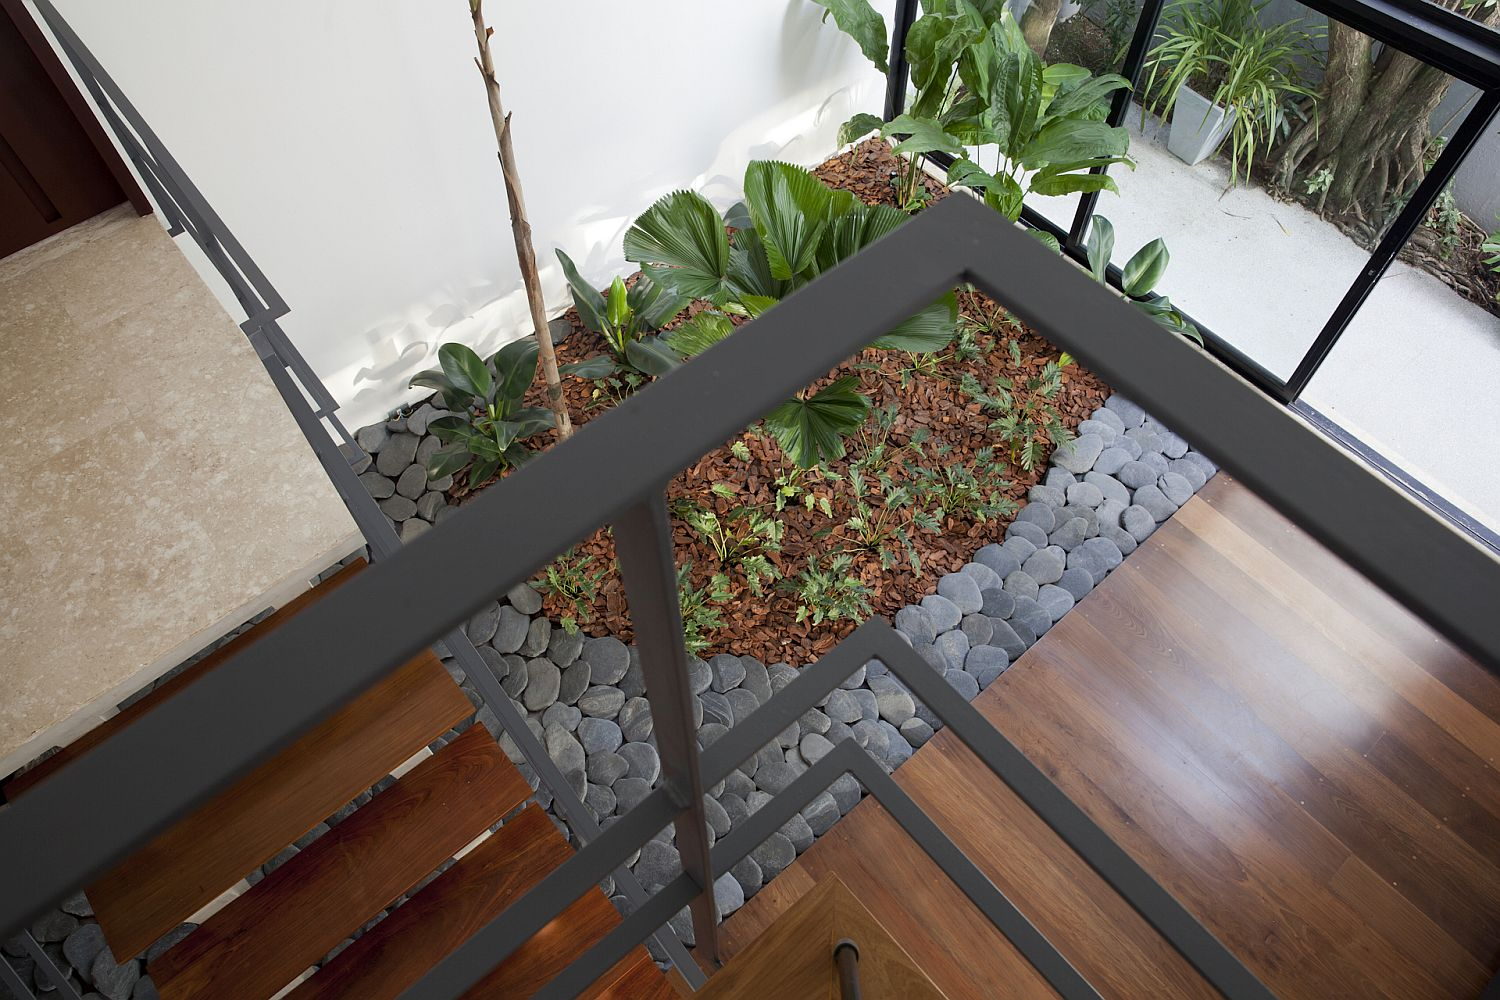 View of the internal garden from the upper level of the contemporary home